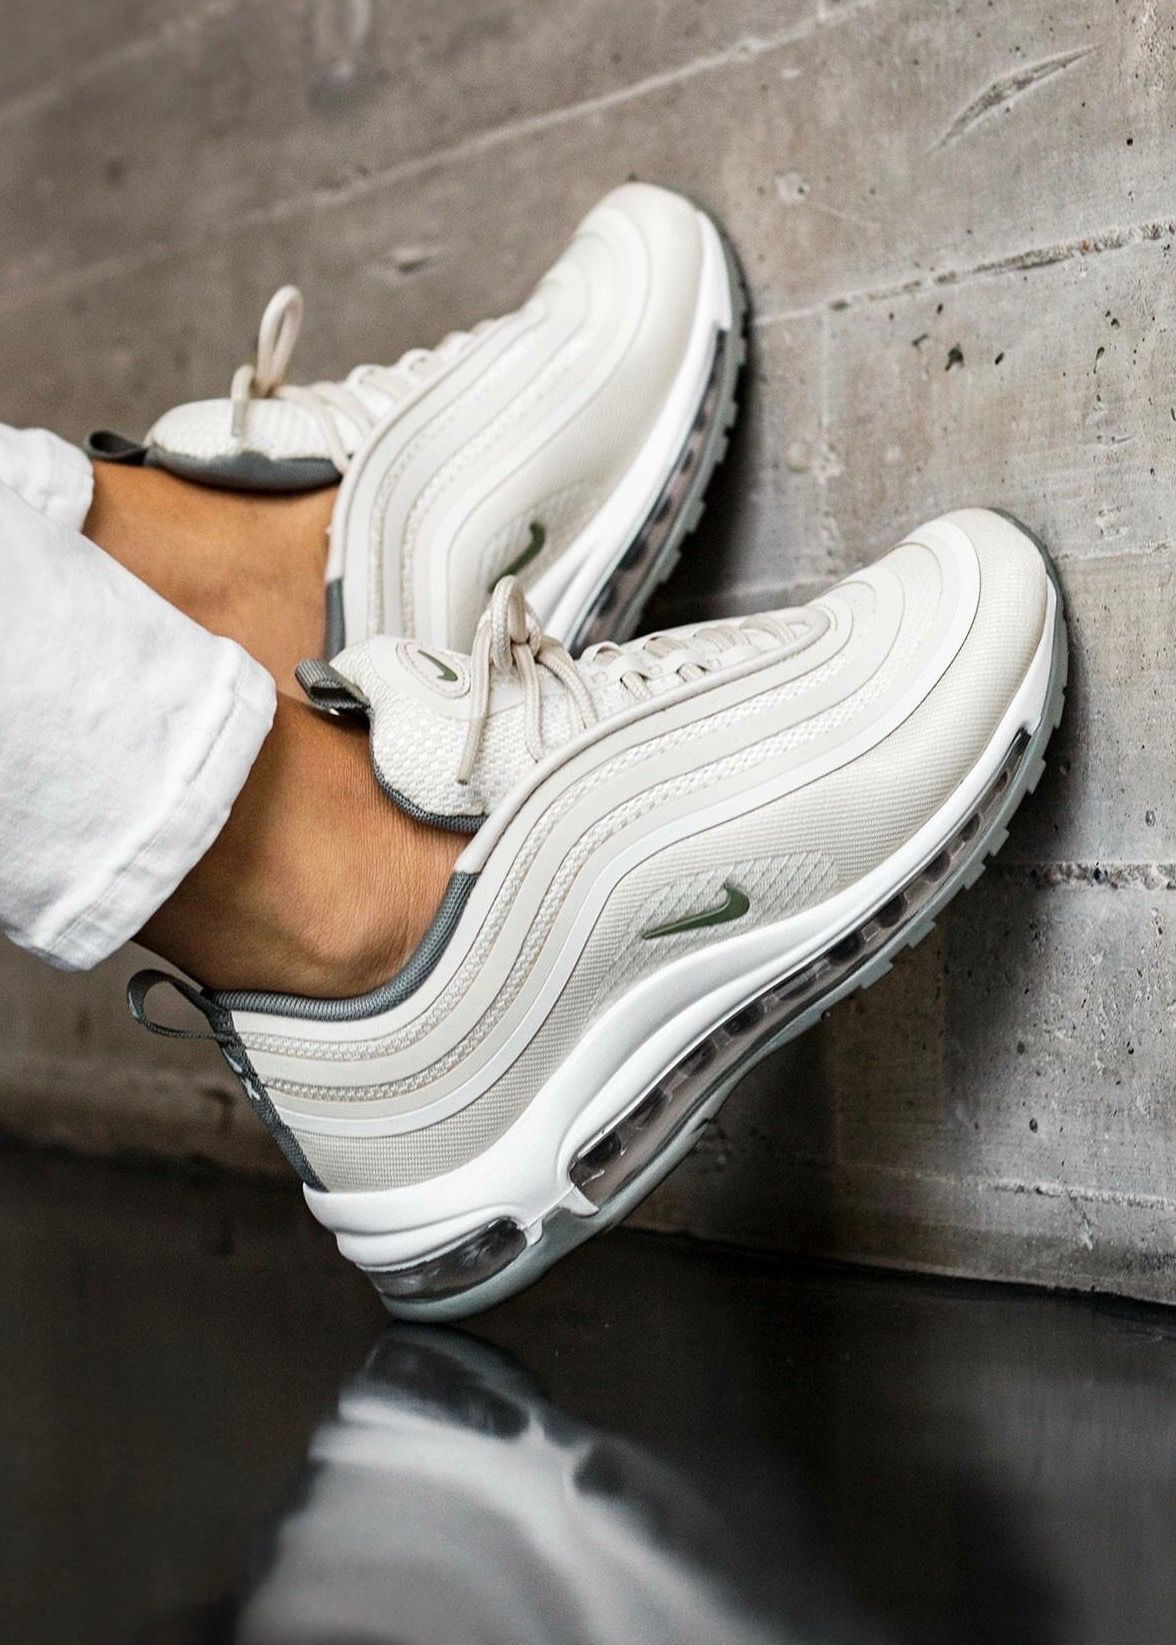 nike air max 97 ultra / pista moda pinterest